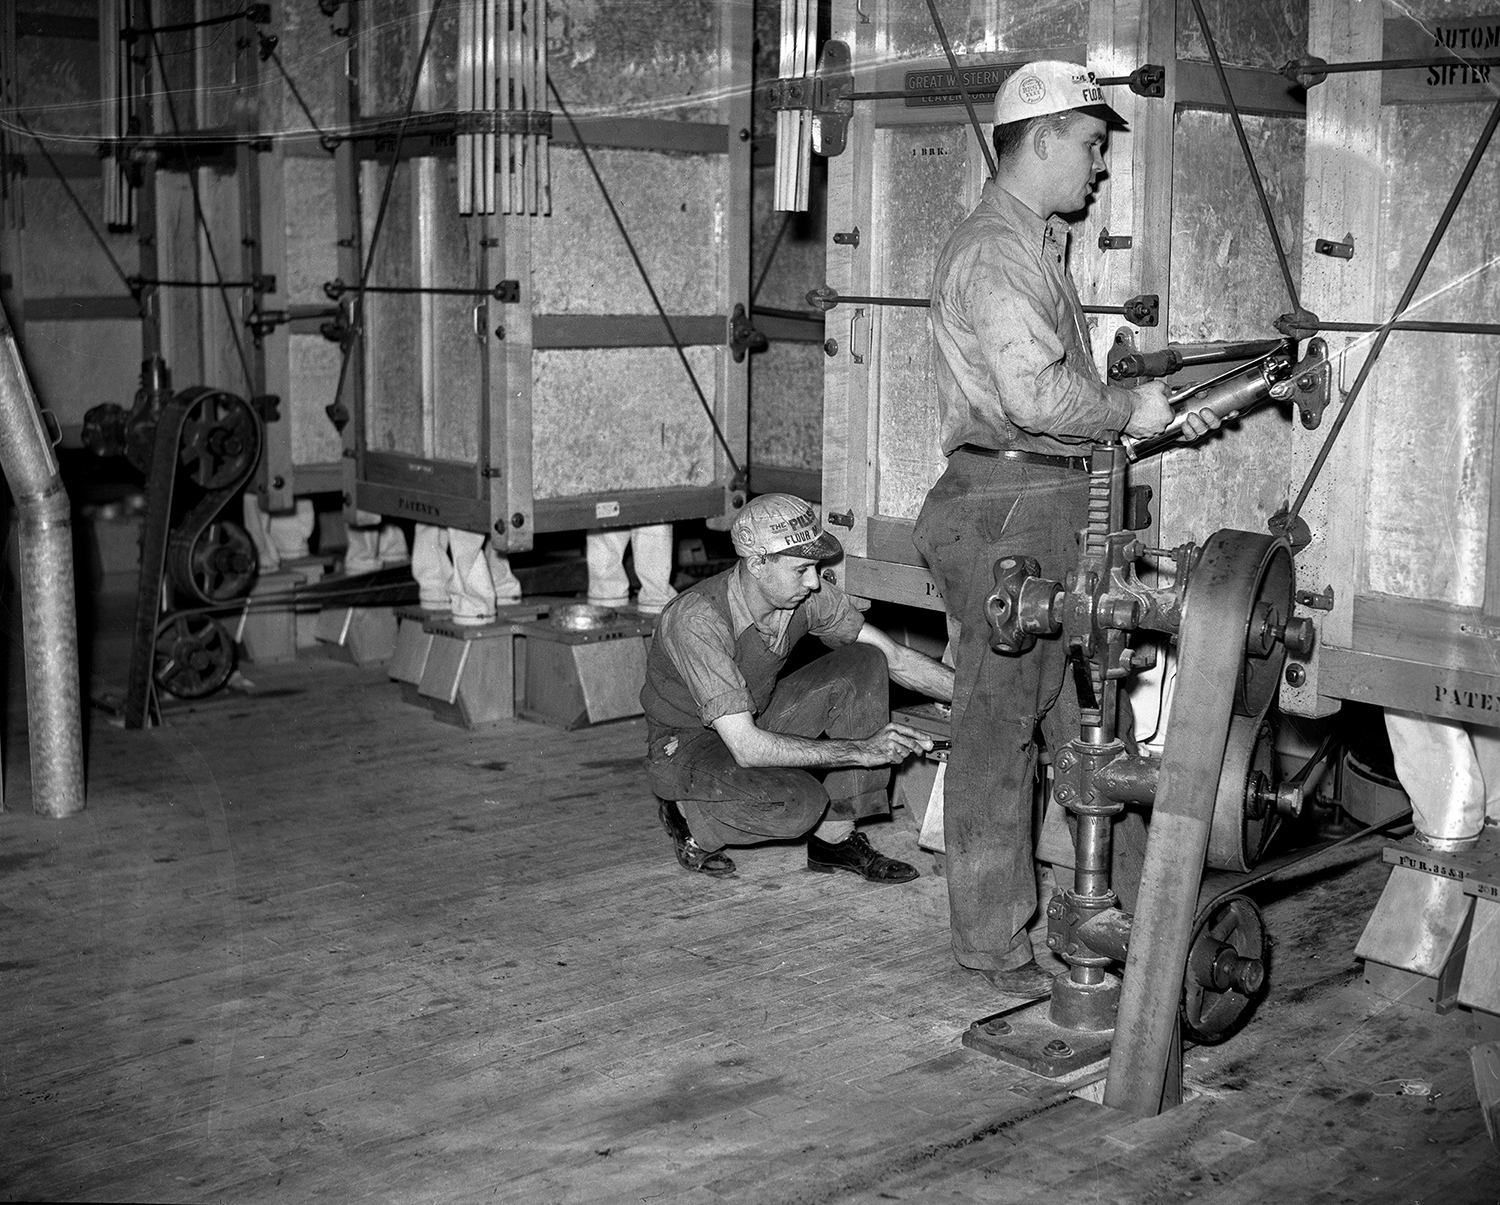 Jules Marcy, left, and John Snyder work on the flour sifters, October 1937. File/The State Journal-Register